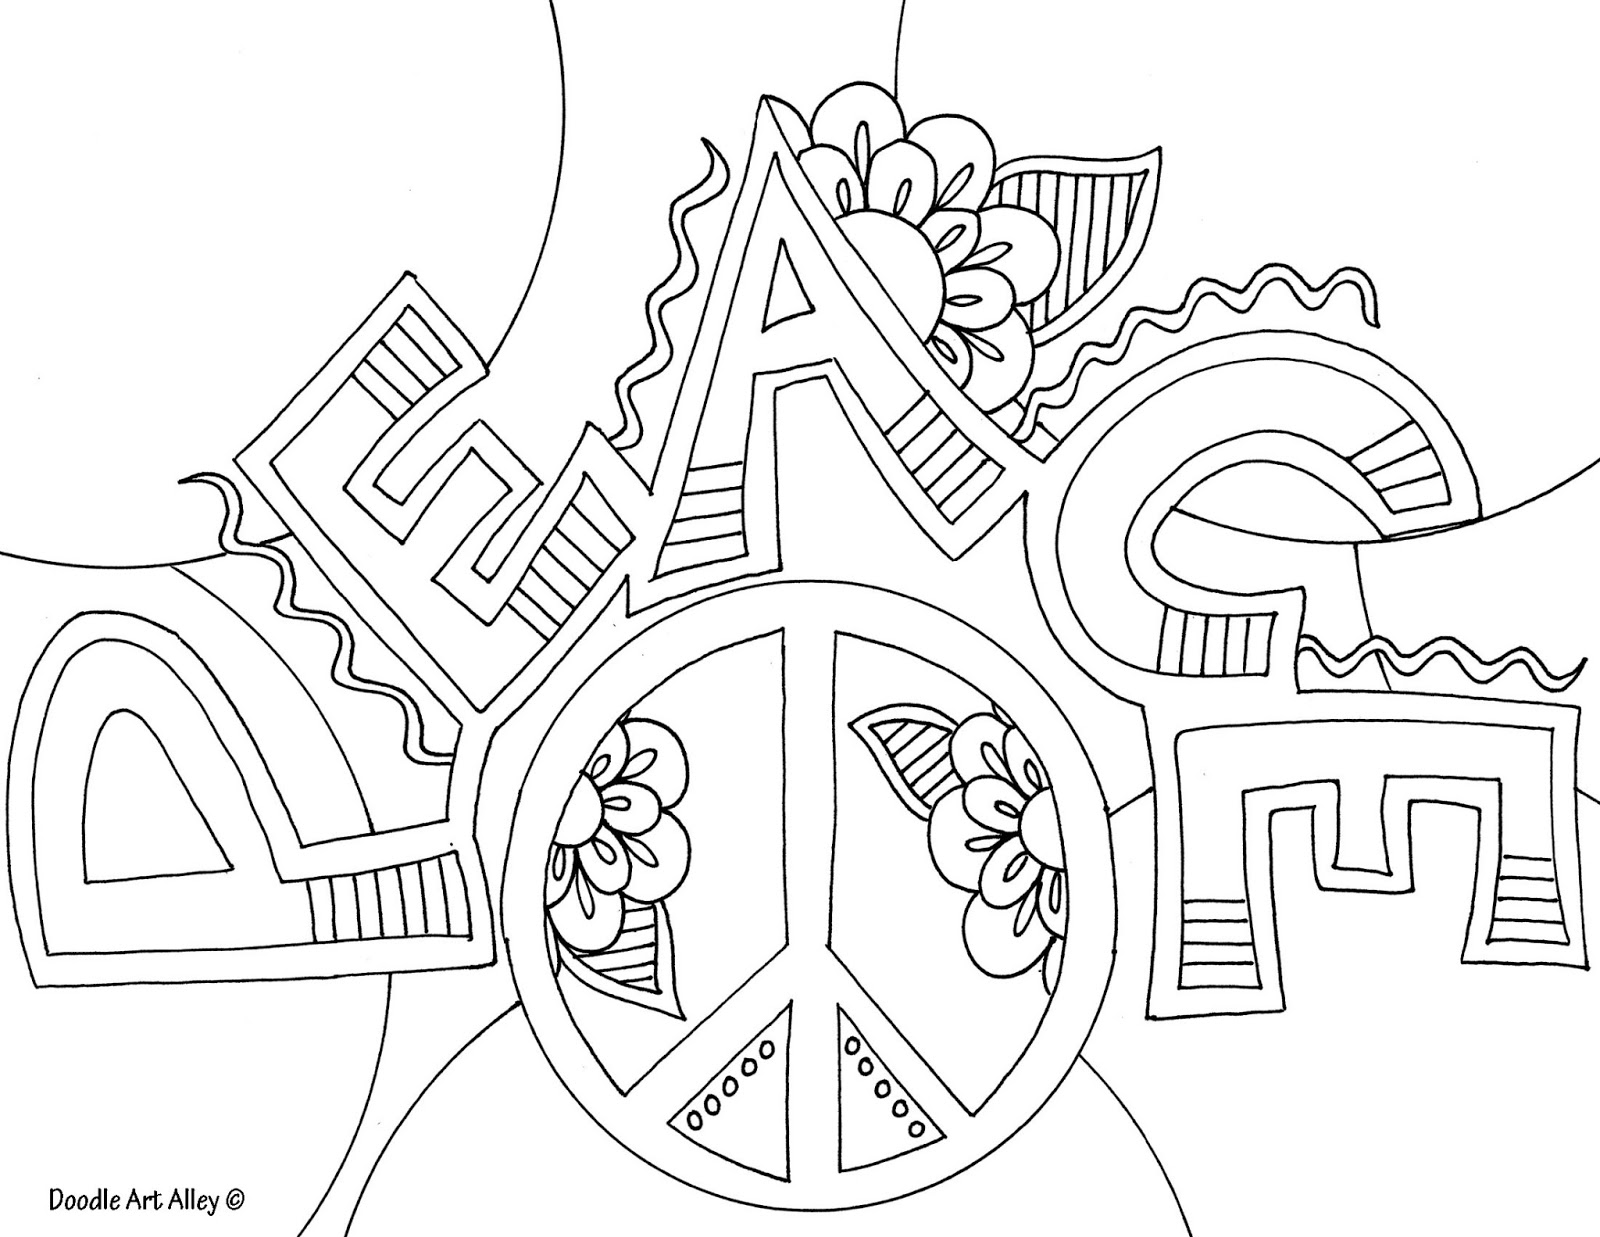 peace coloring page costumepartyrun